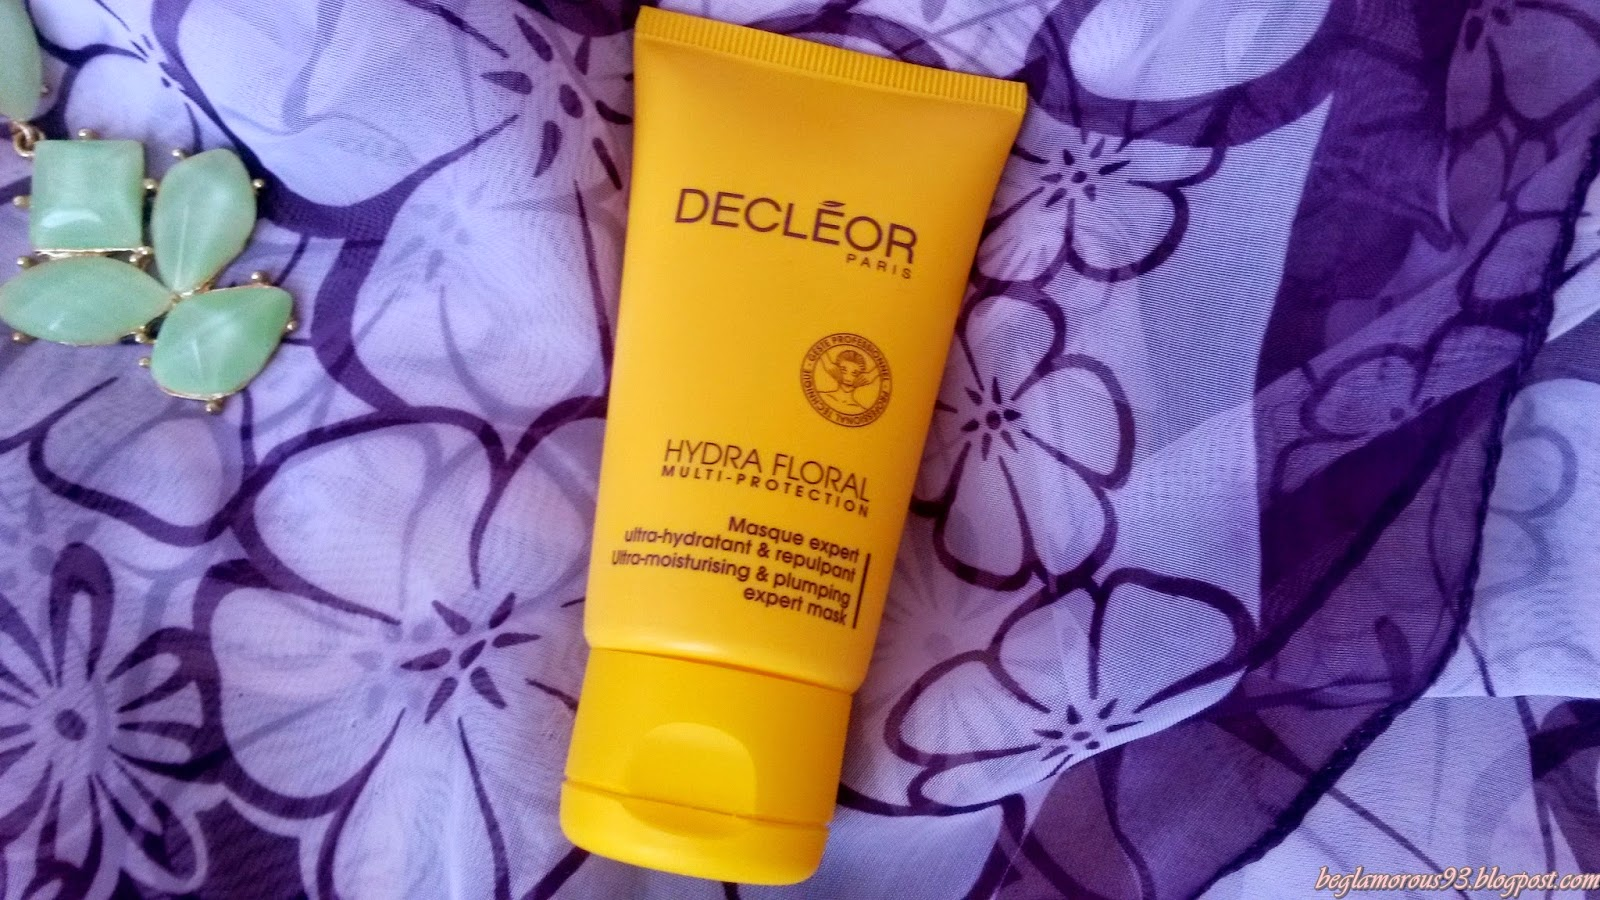 Decleor Hydra floral mask